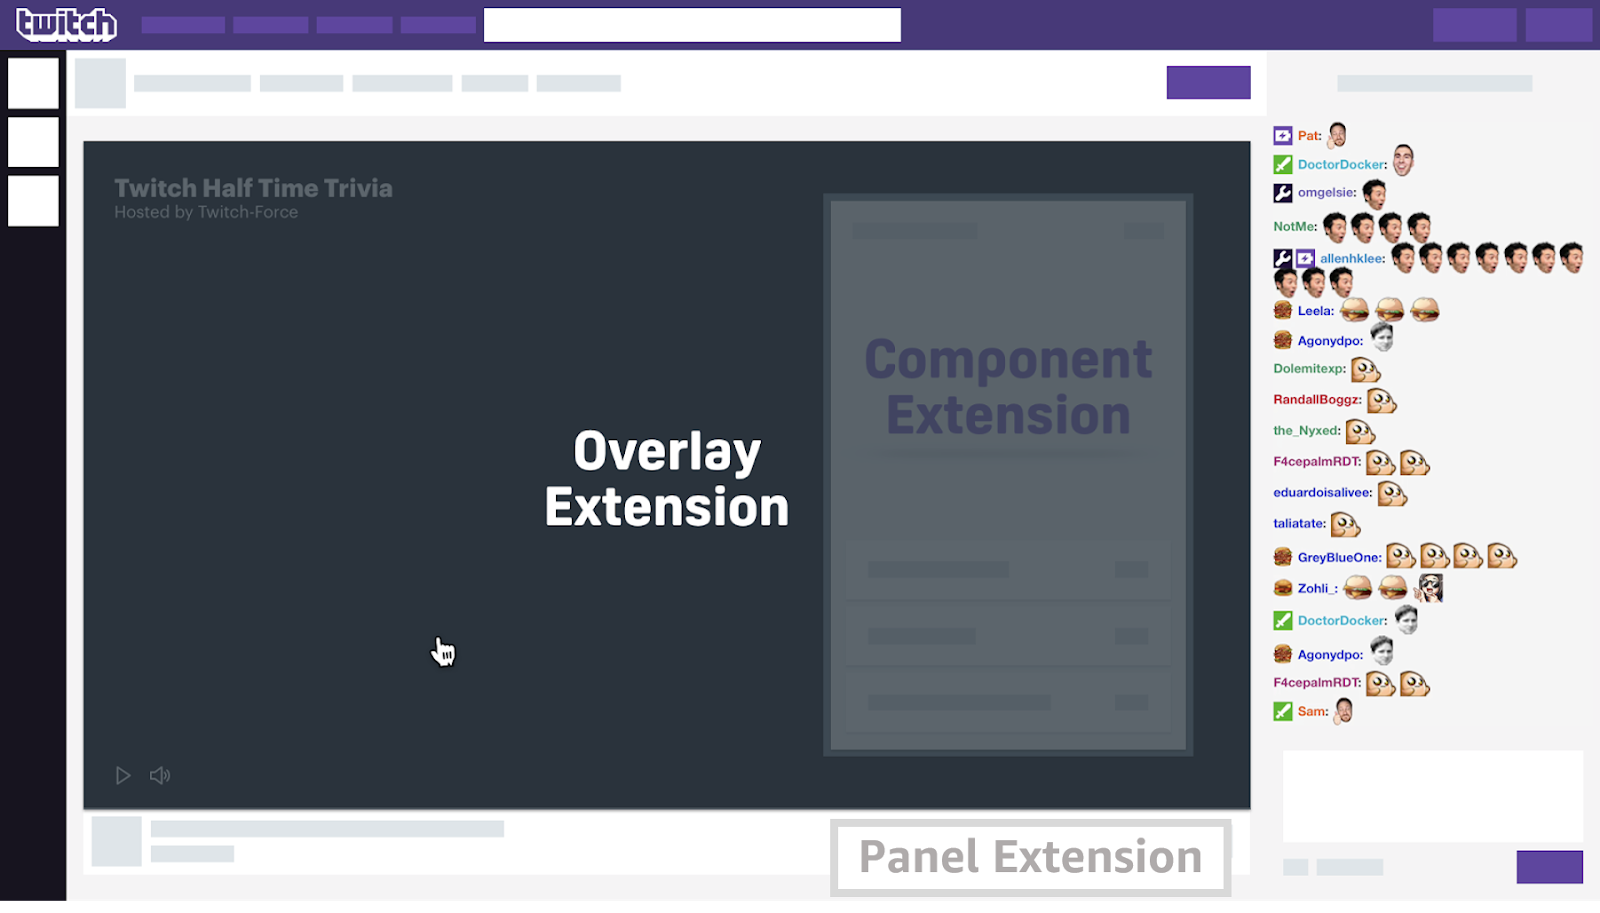 10 Tips for Building Twitch Extensions - Twitch Blog